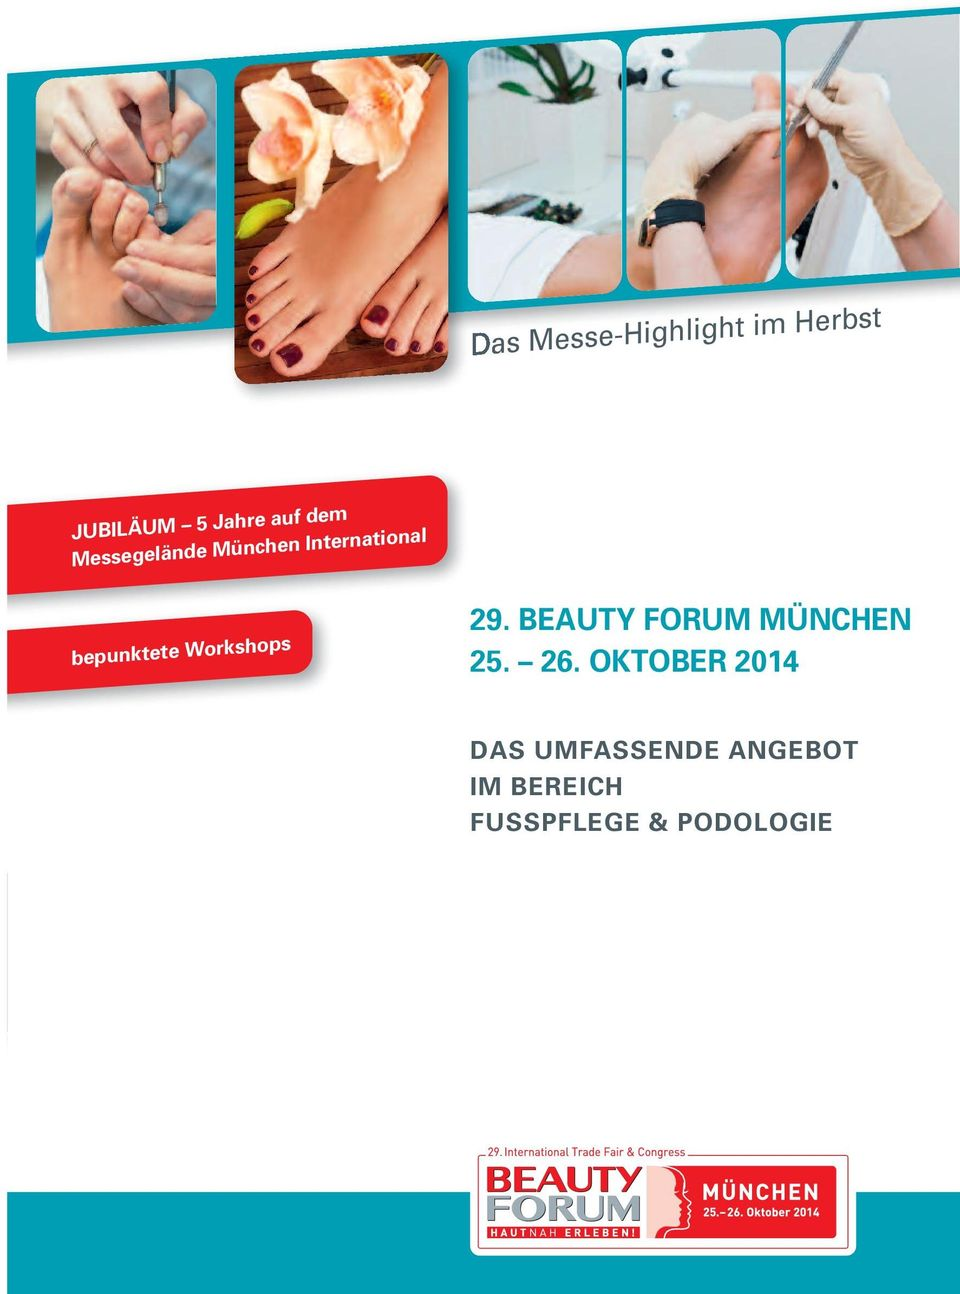 Workshops 29. BEAUTY FORUM MÜNCHEN 25. 26.